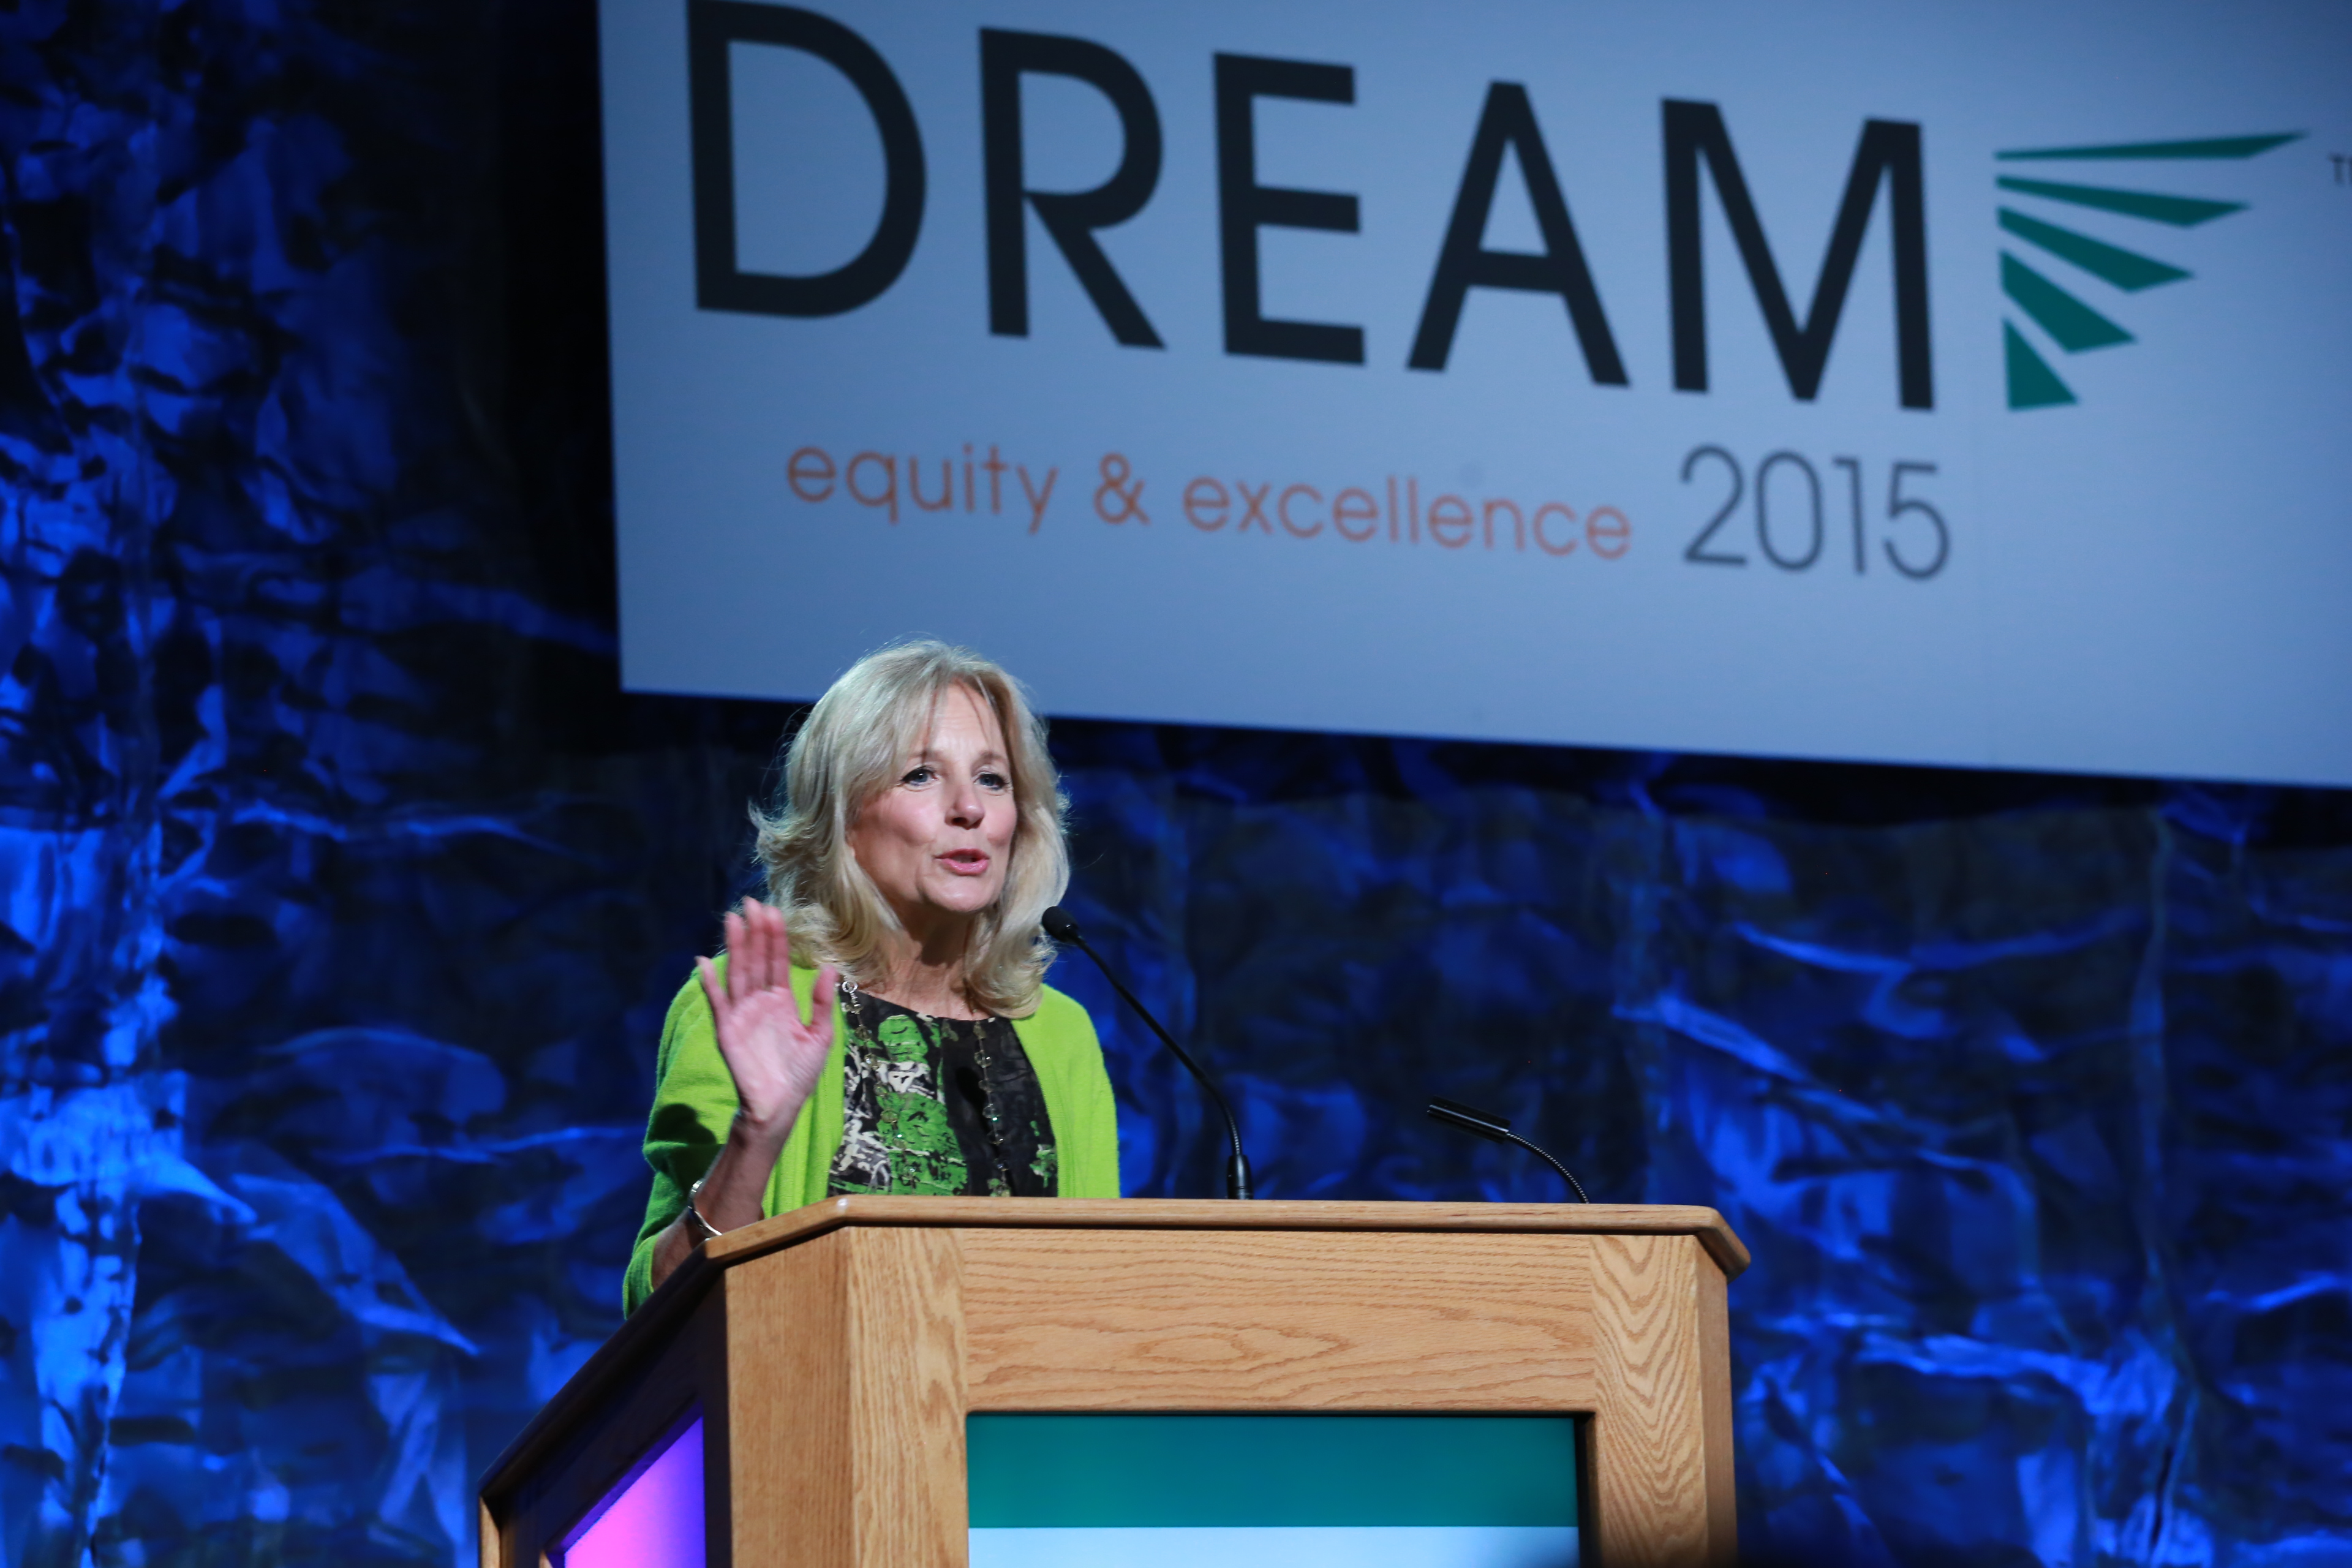 Dr. Jill Biden delivers closing remarks at DREAM 2015